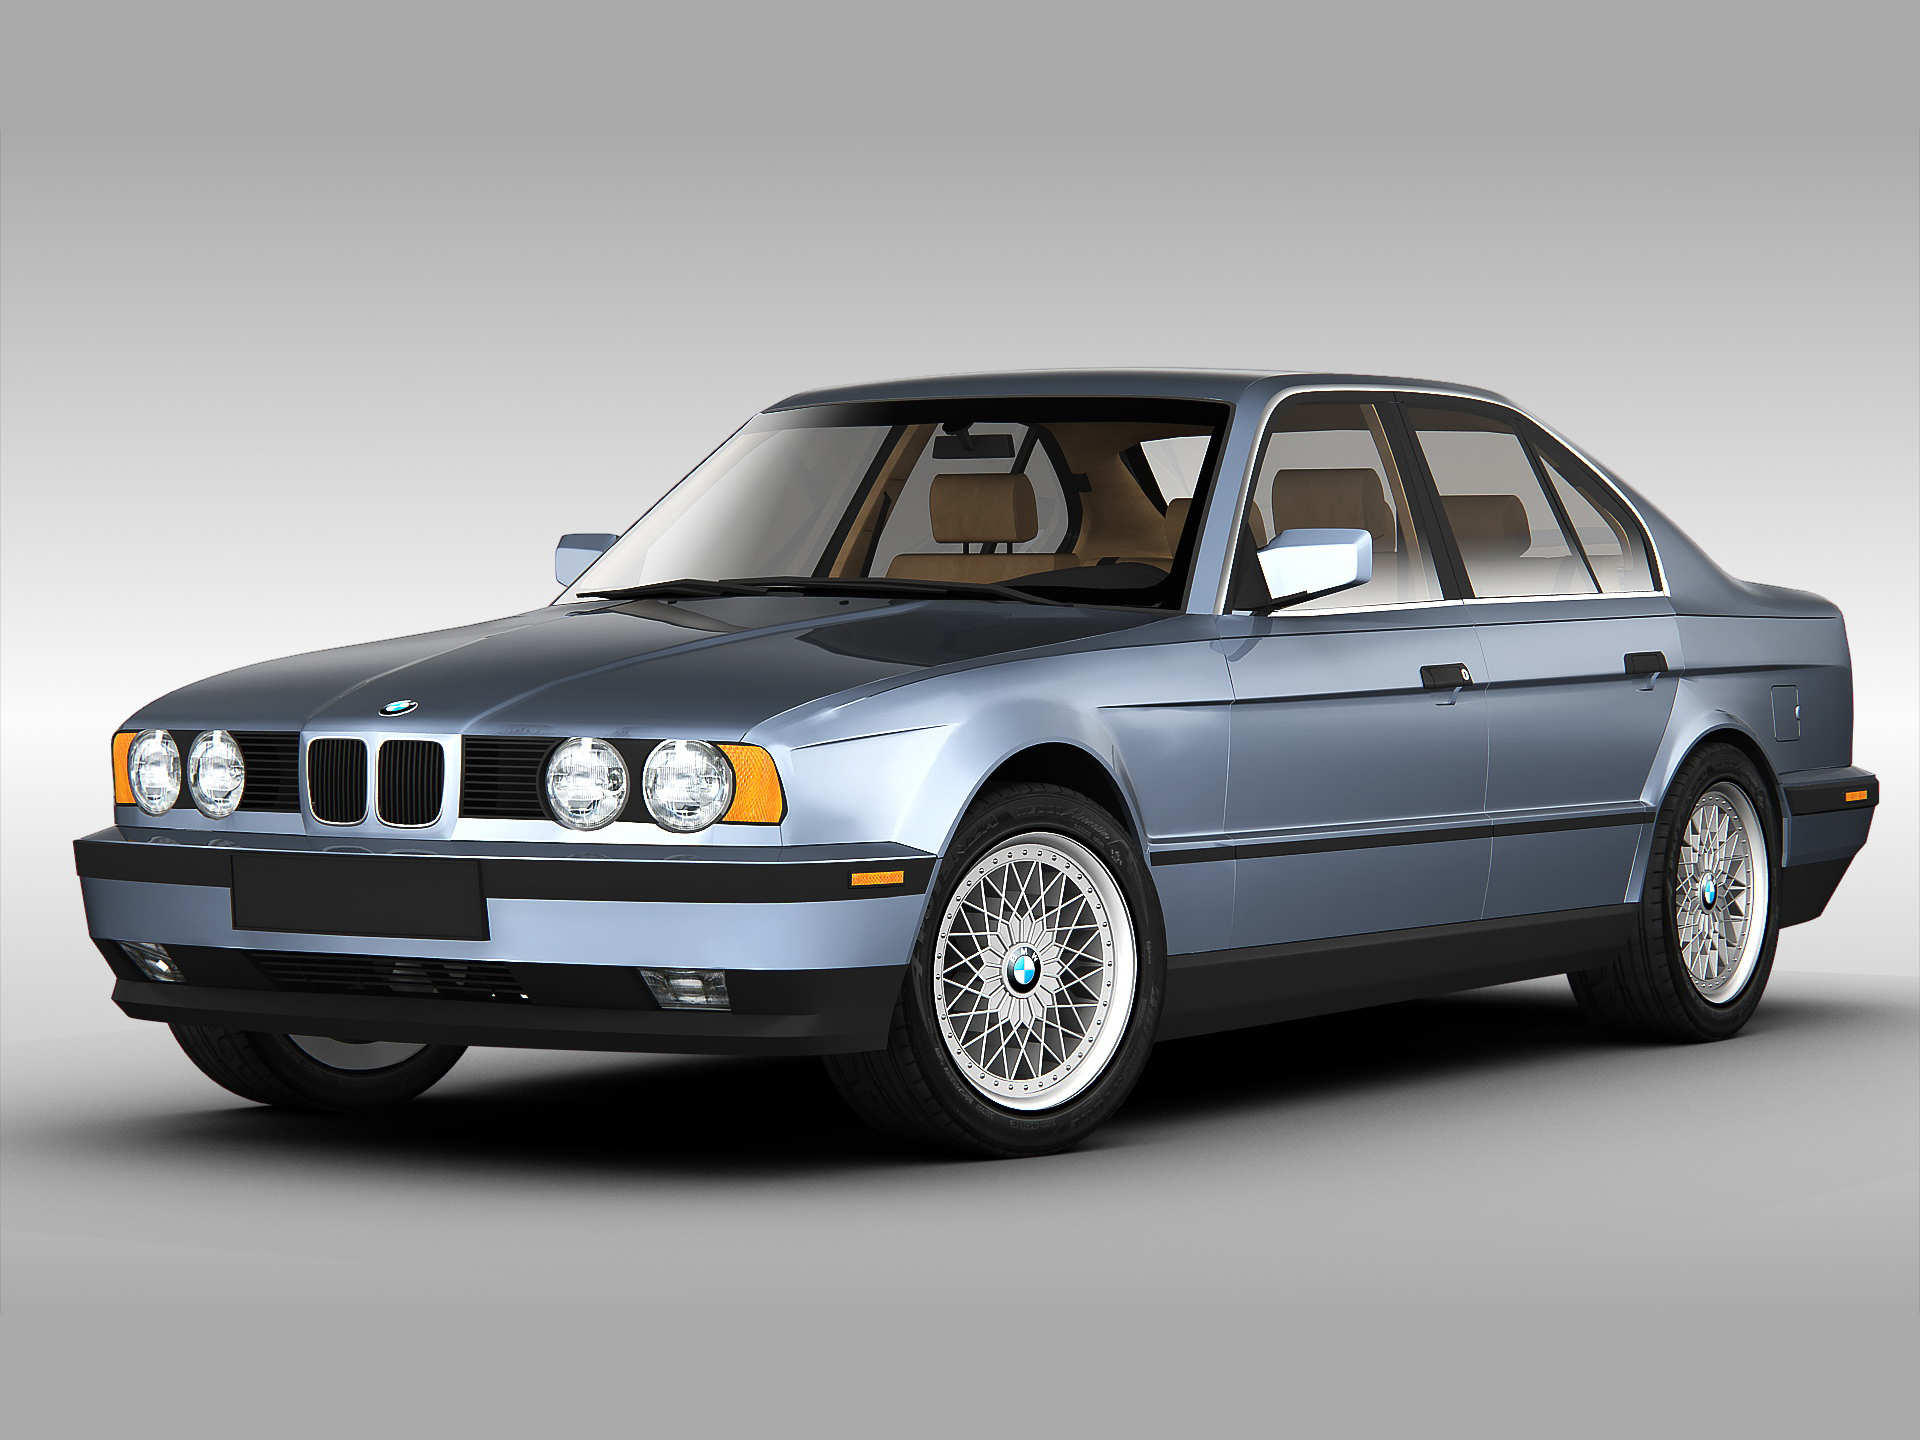 bmw 5 series e34 3d model max obj 3ds fbx. Black Bedroom Furniture Sets. Home Design Ideas